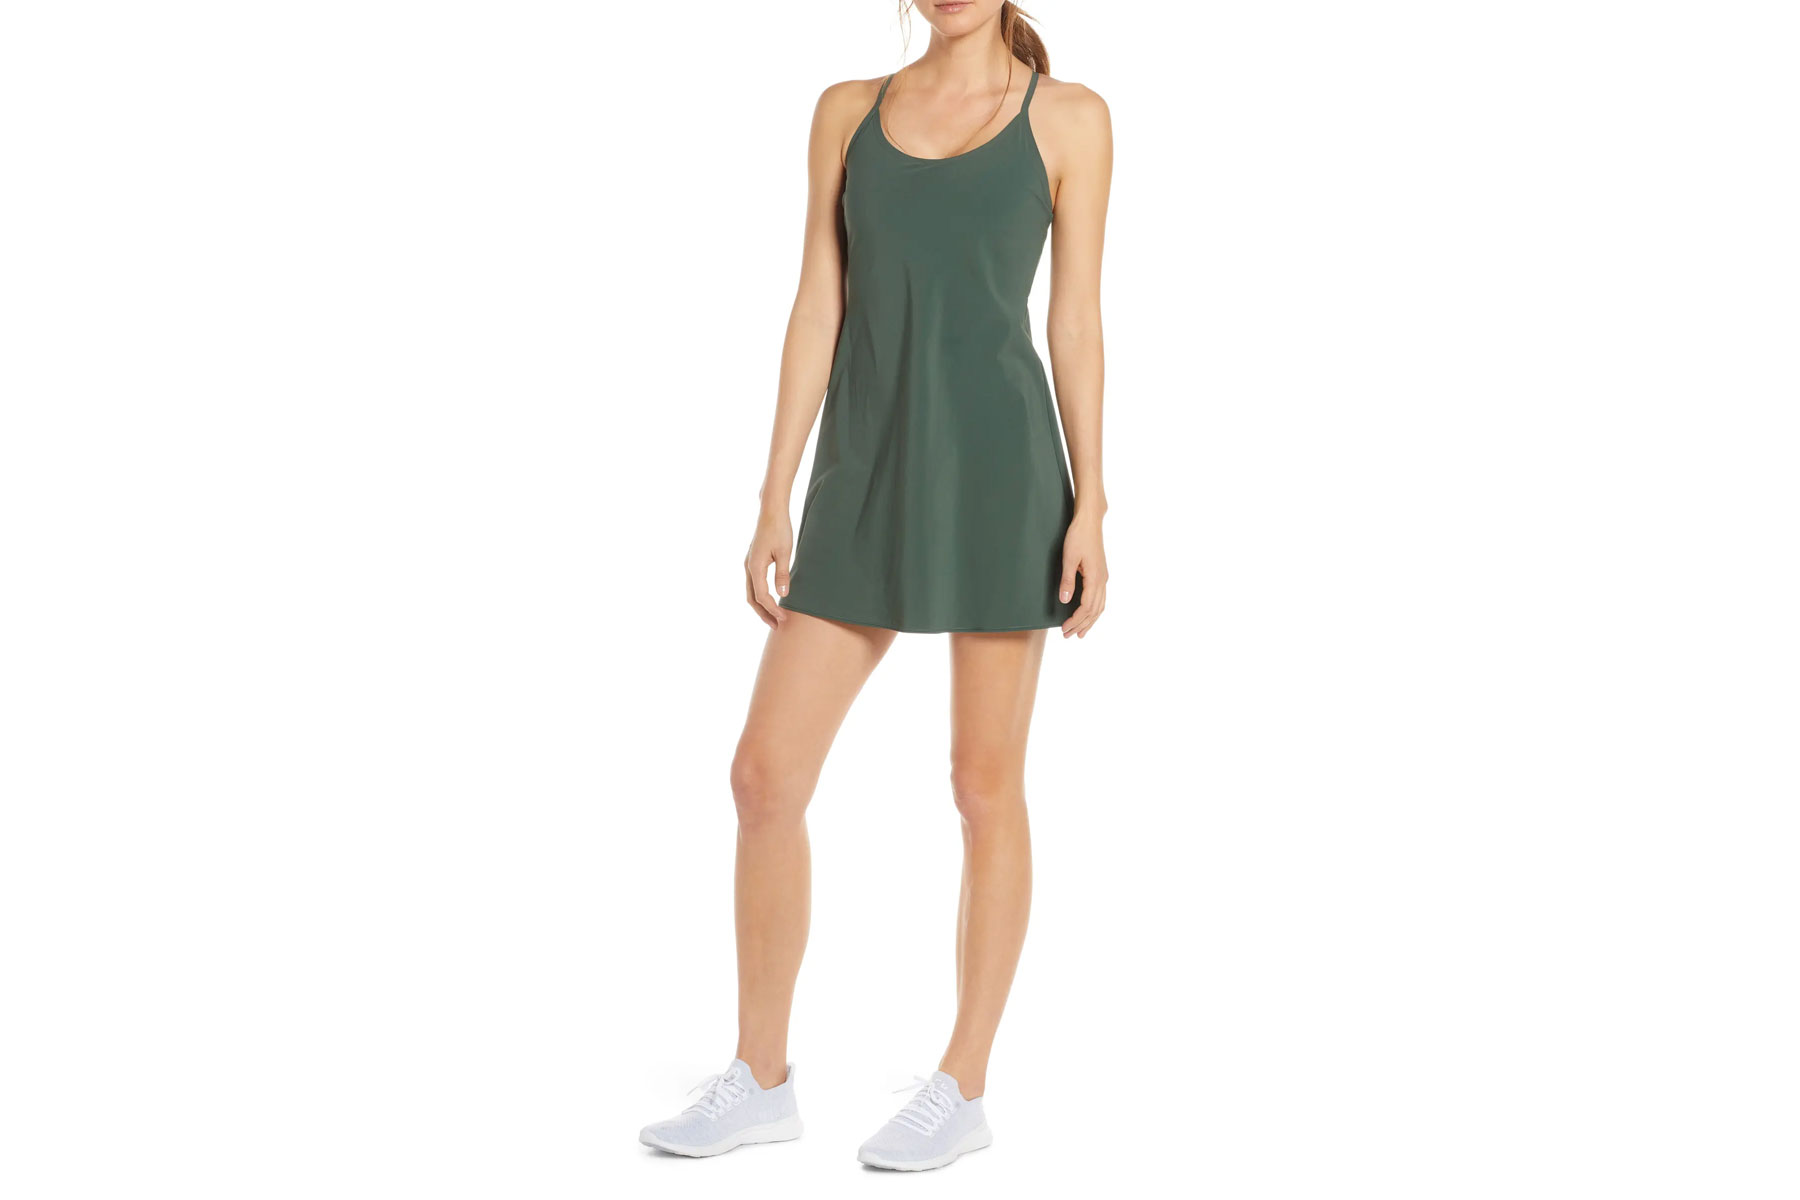 Woman wearing olive green exercise dress